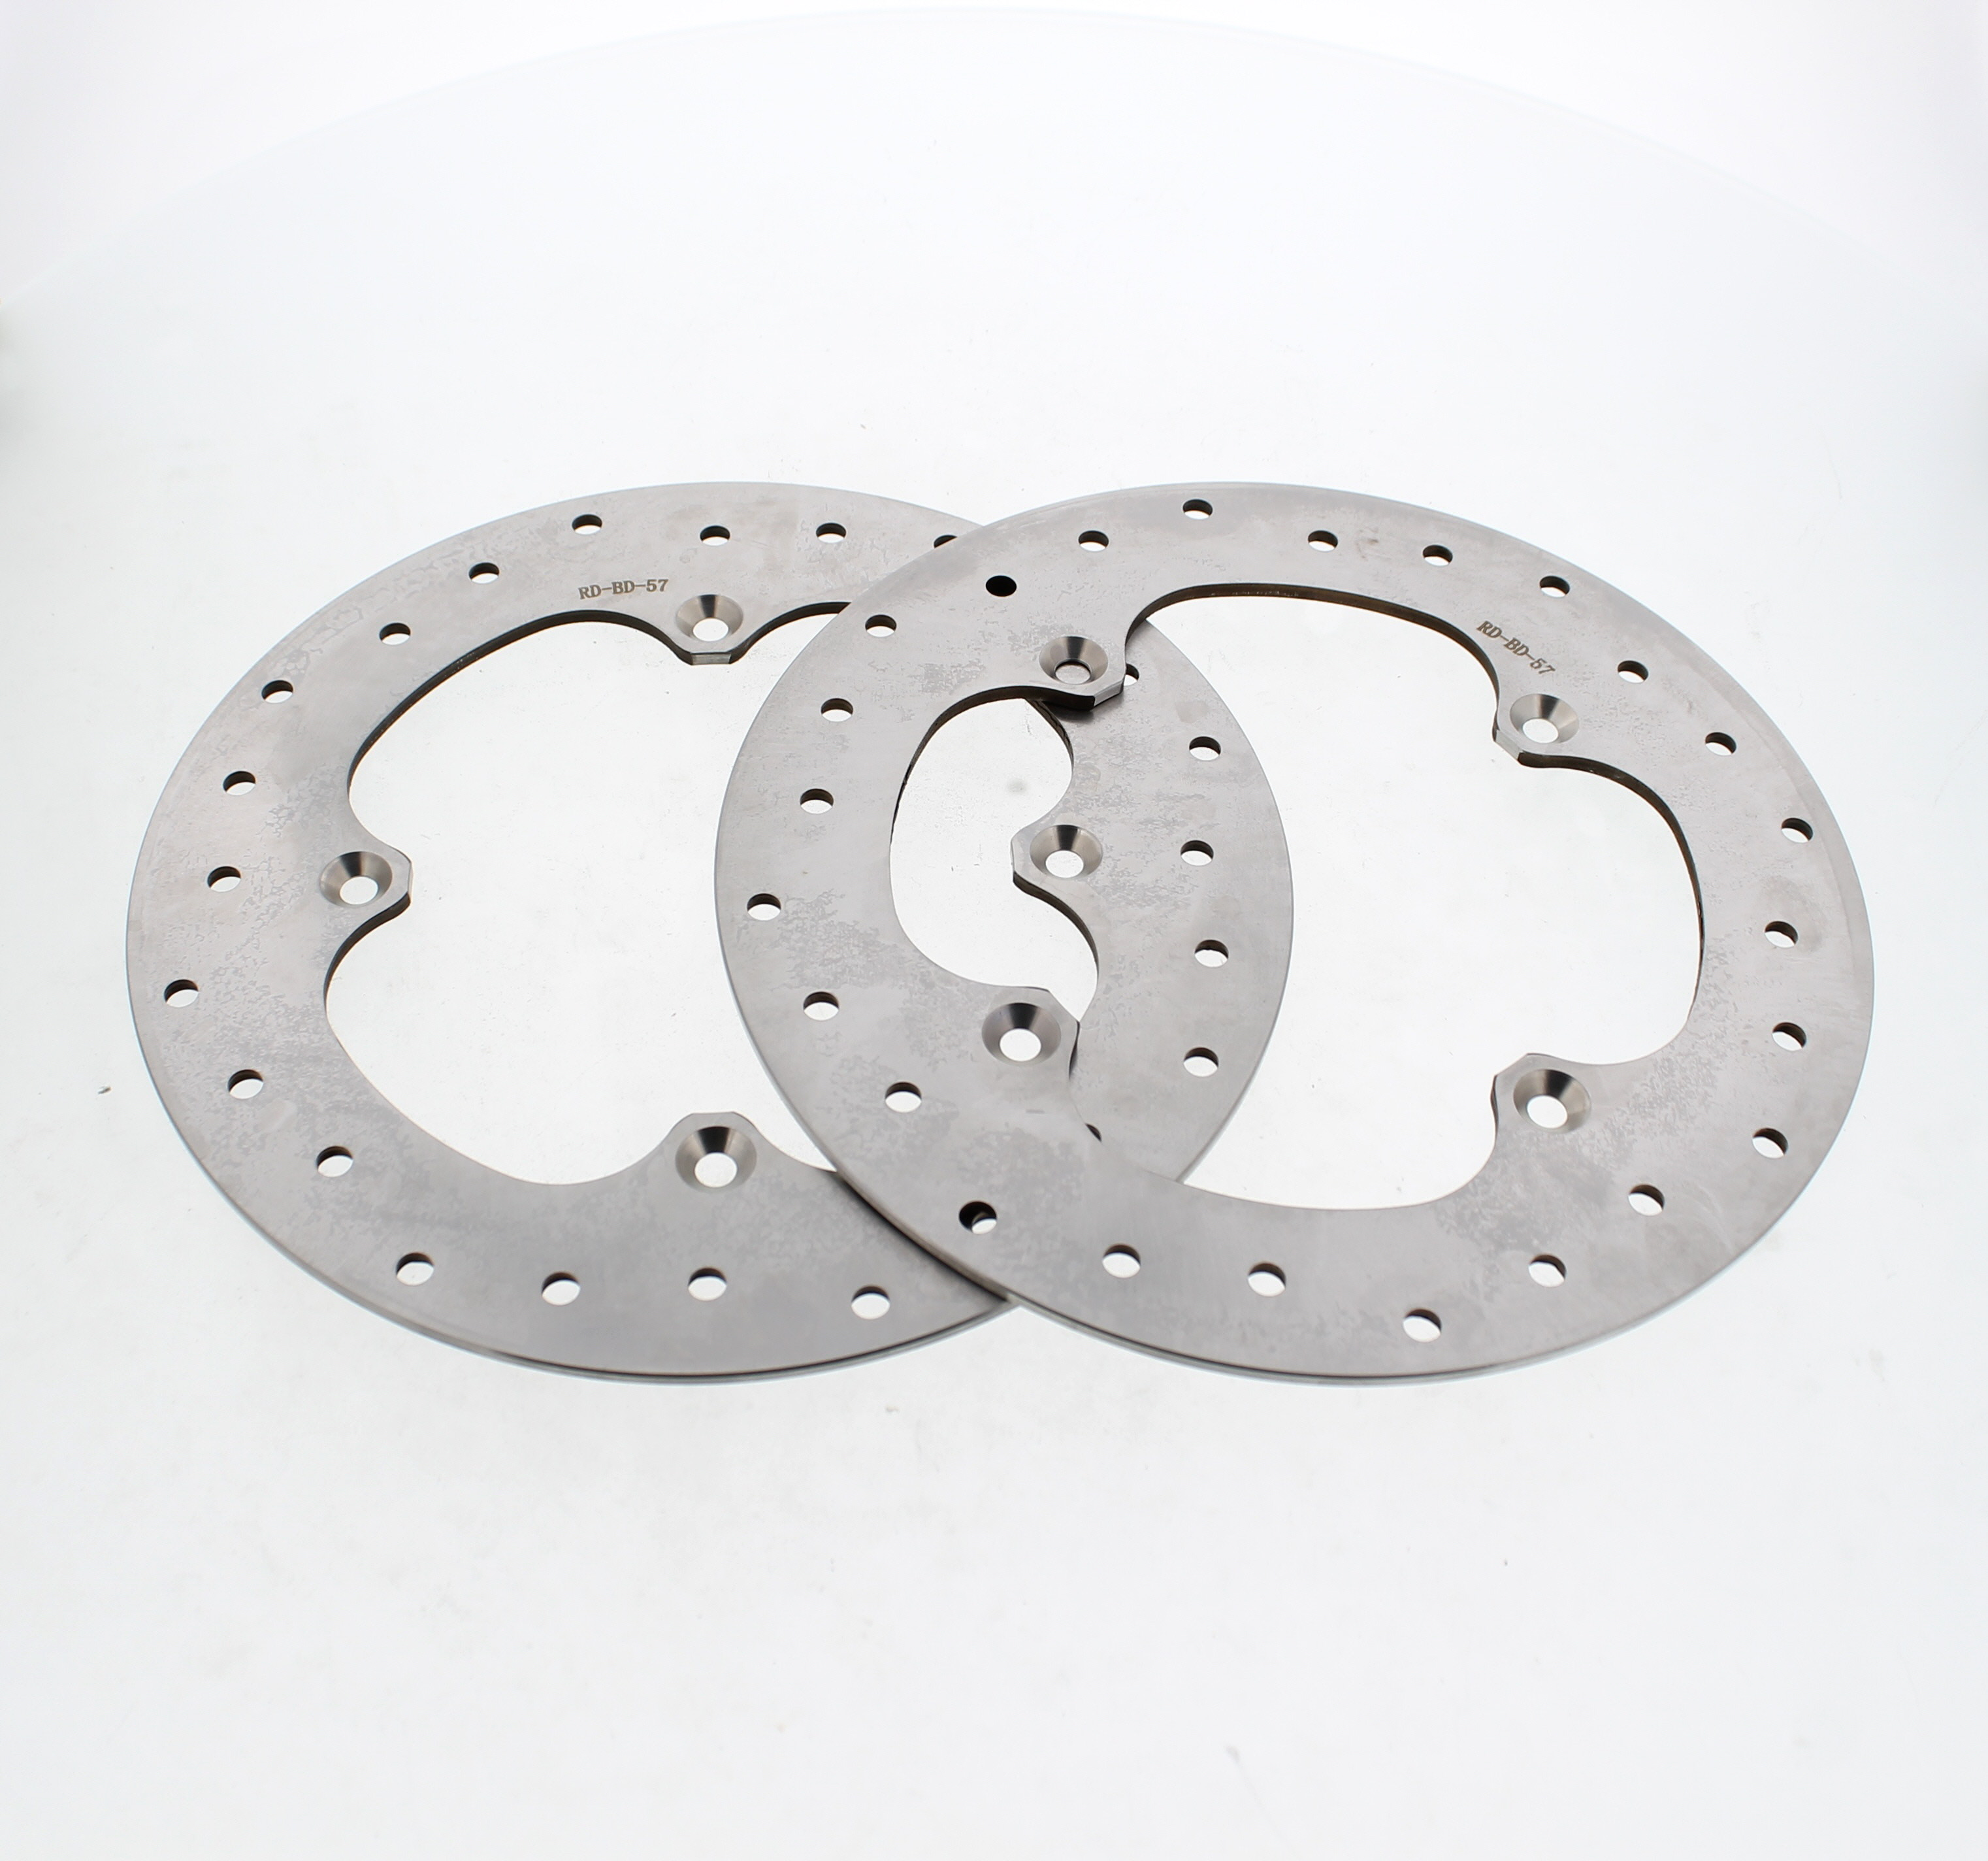 2017 fits Can-Am Maverick X3 Turbo Front RipTide Brake Rotor Discs Both Sides